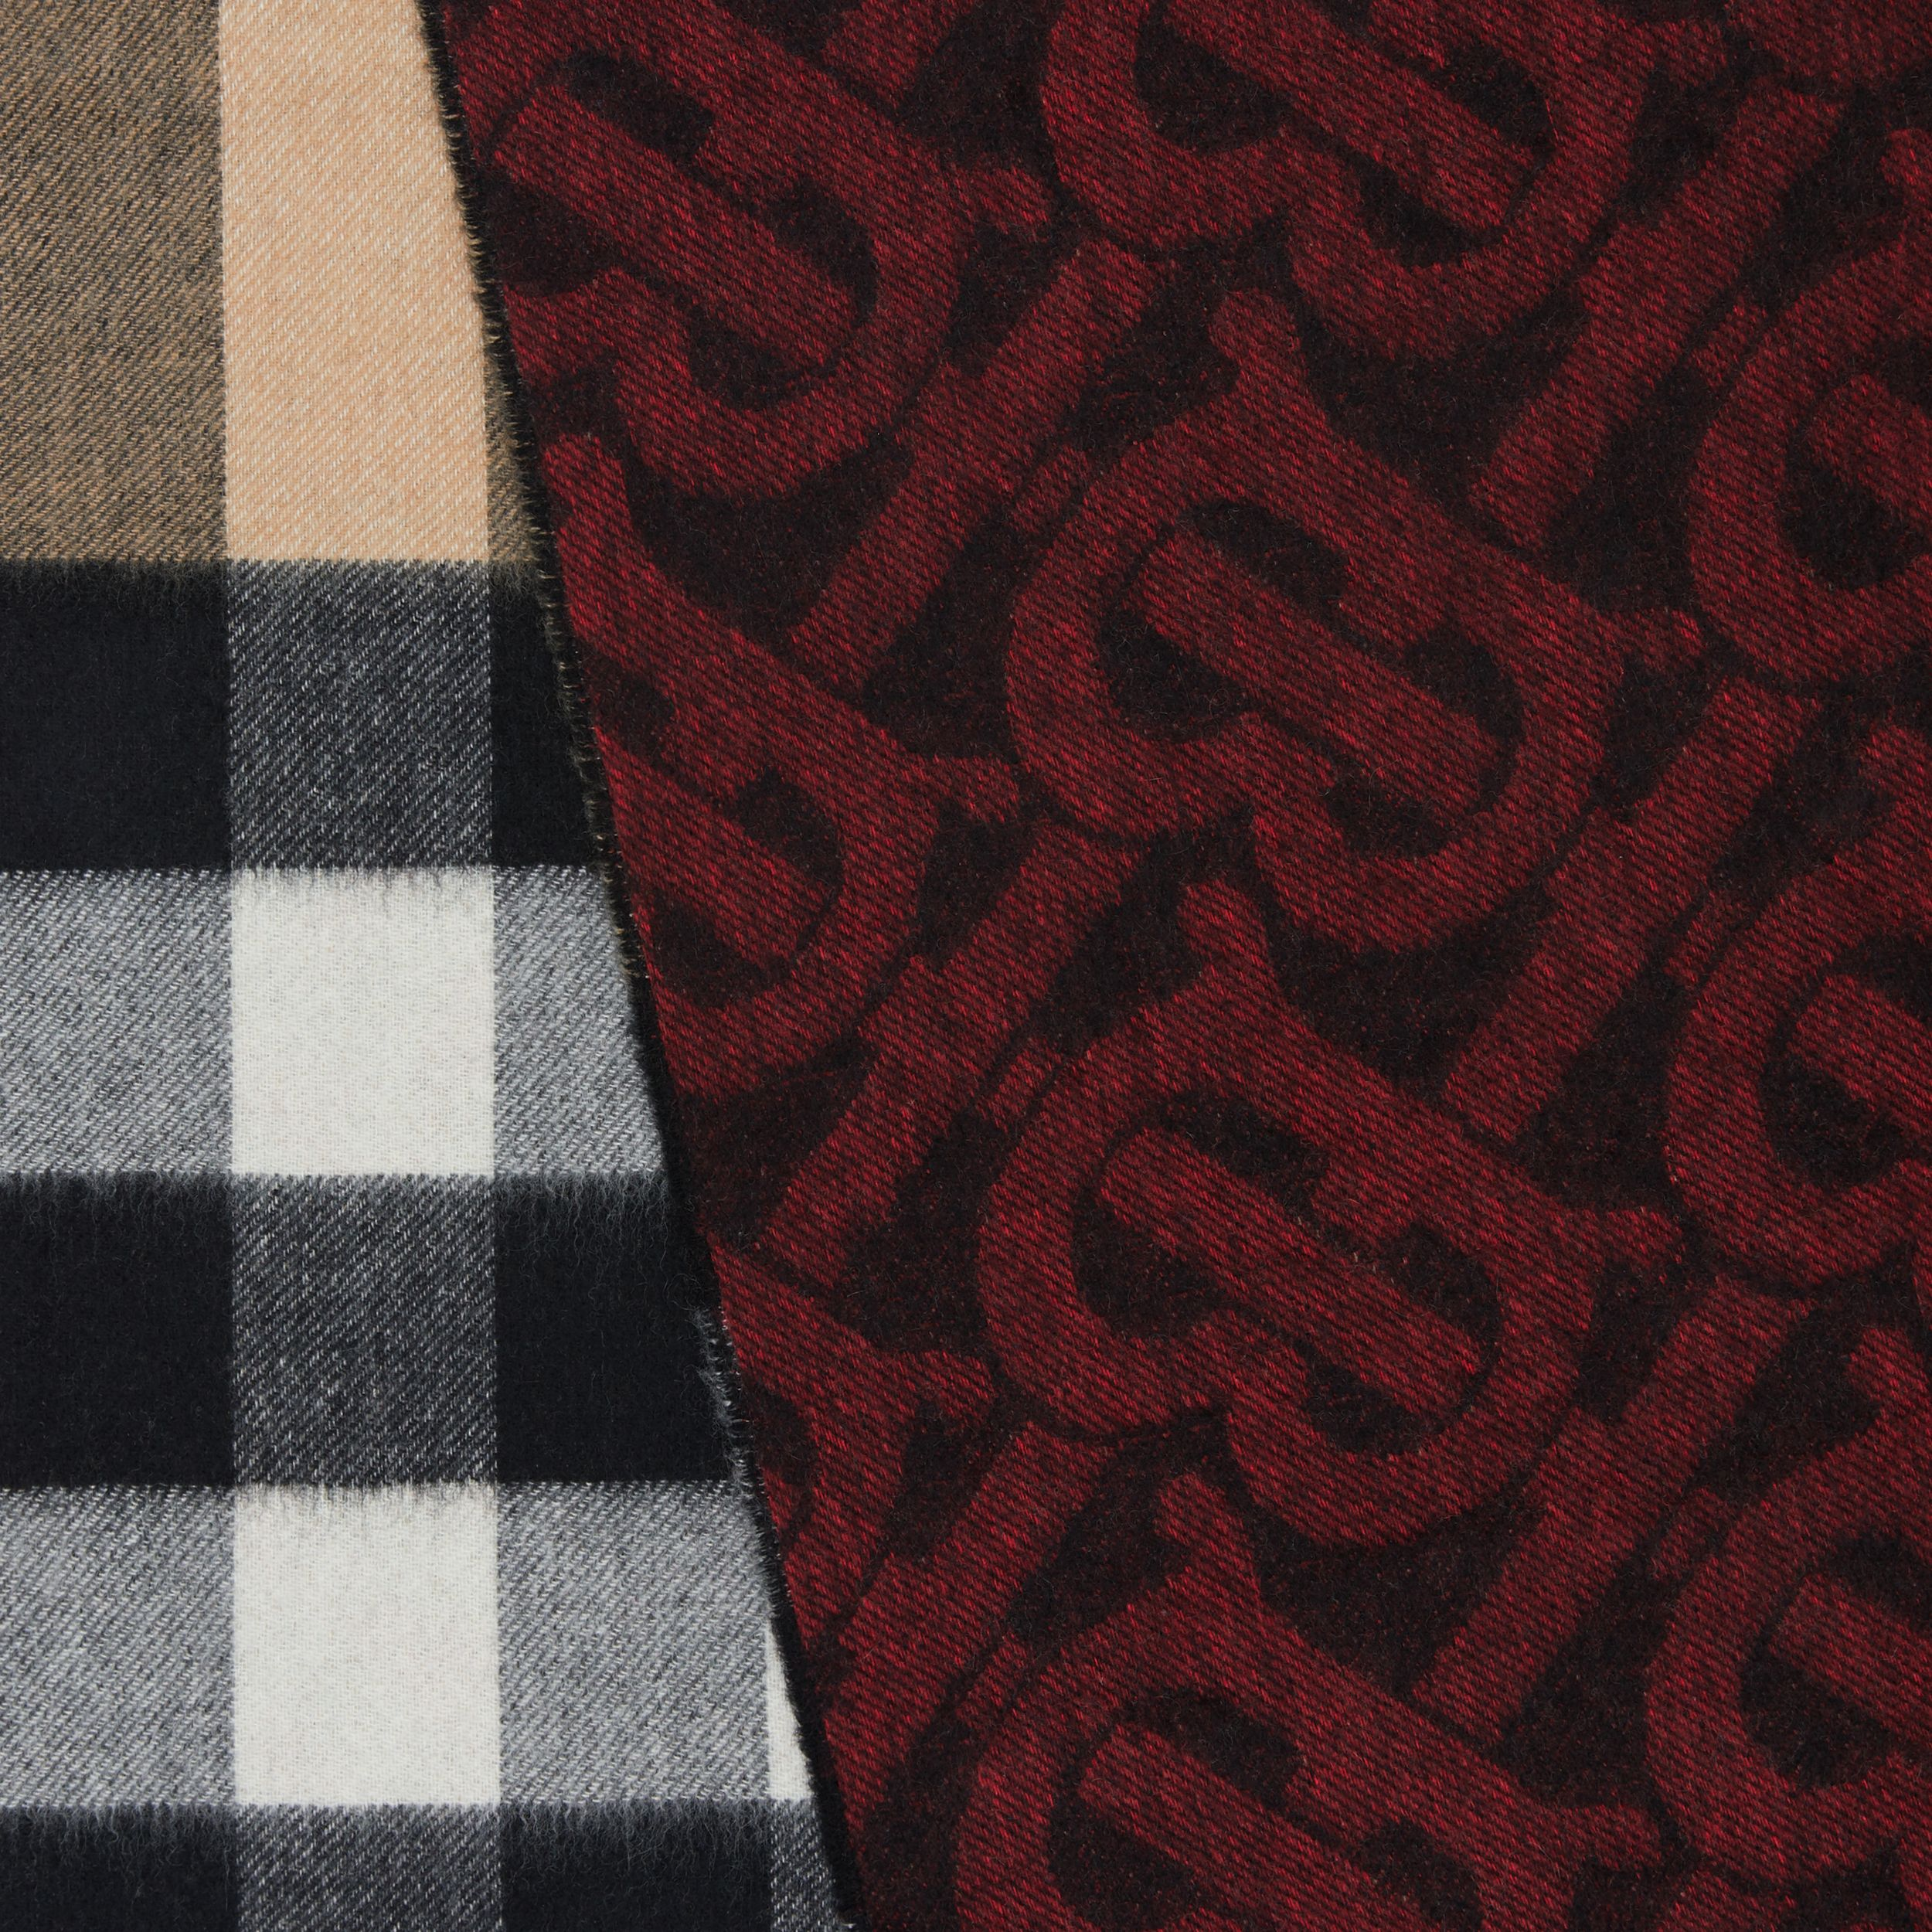 Reversible Check and Monogram Cashmere Scarf in Bright Red | Burberry - 2